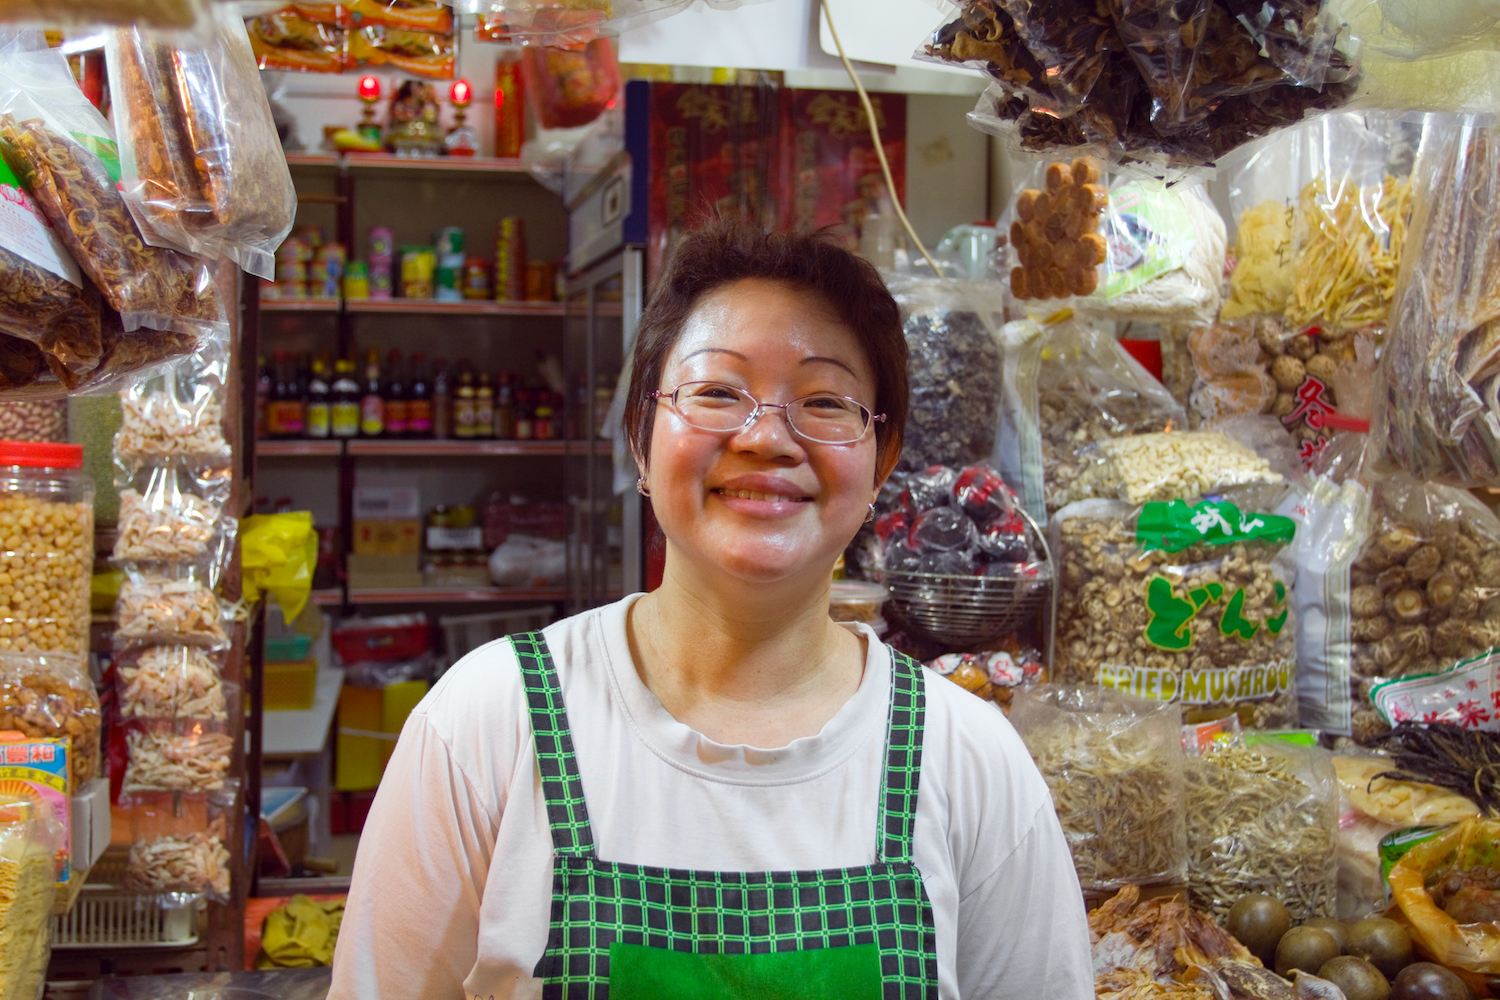 shopkeeper at serangoon gardens market